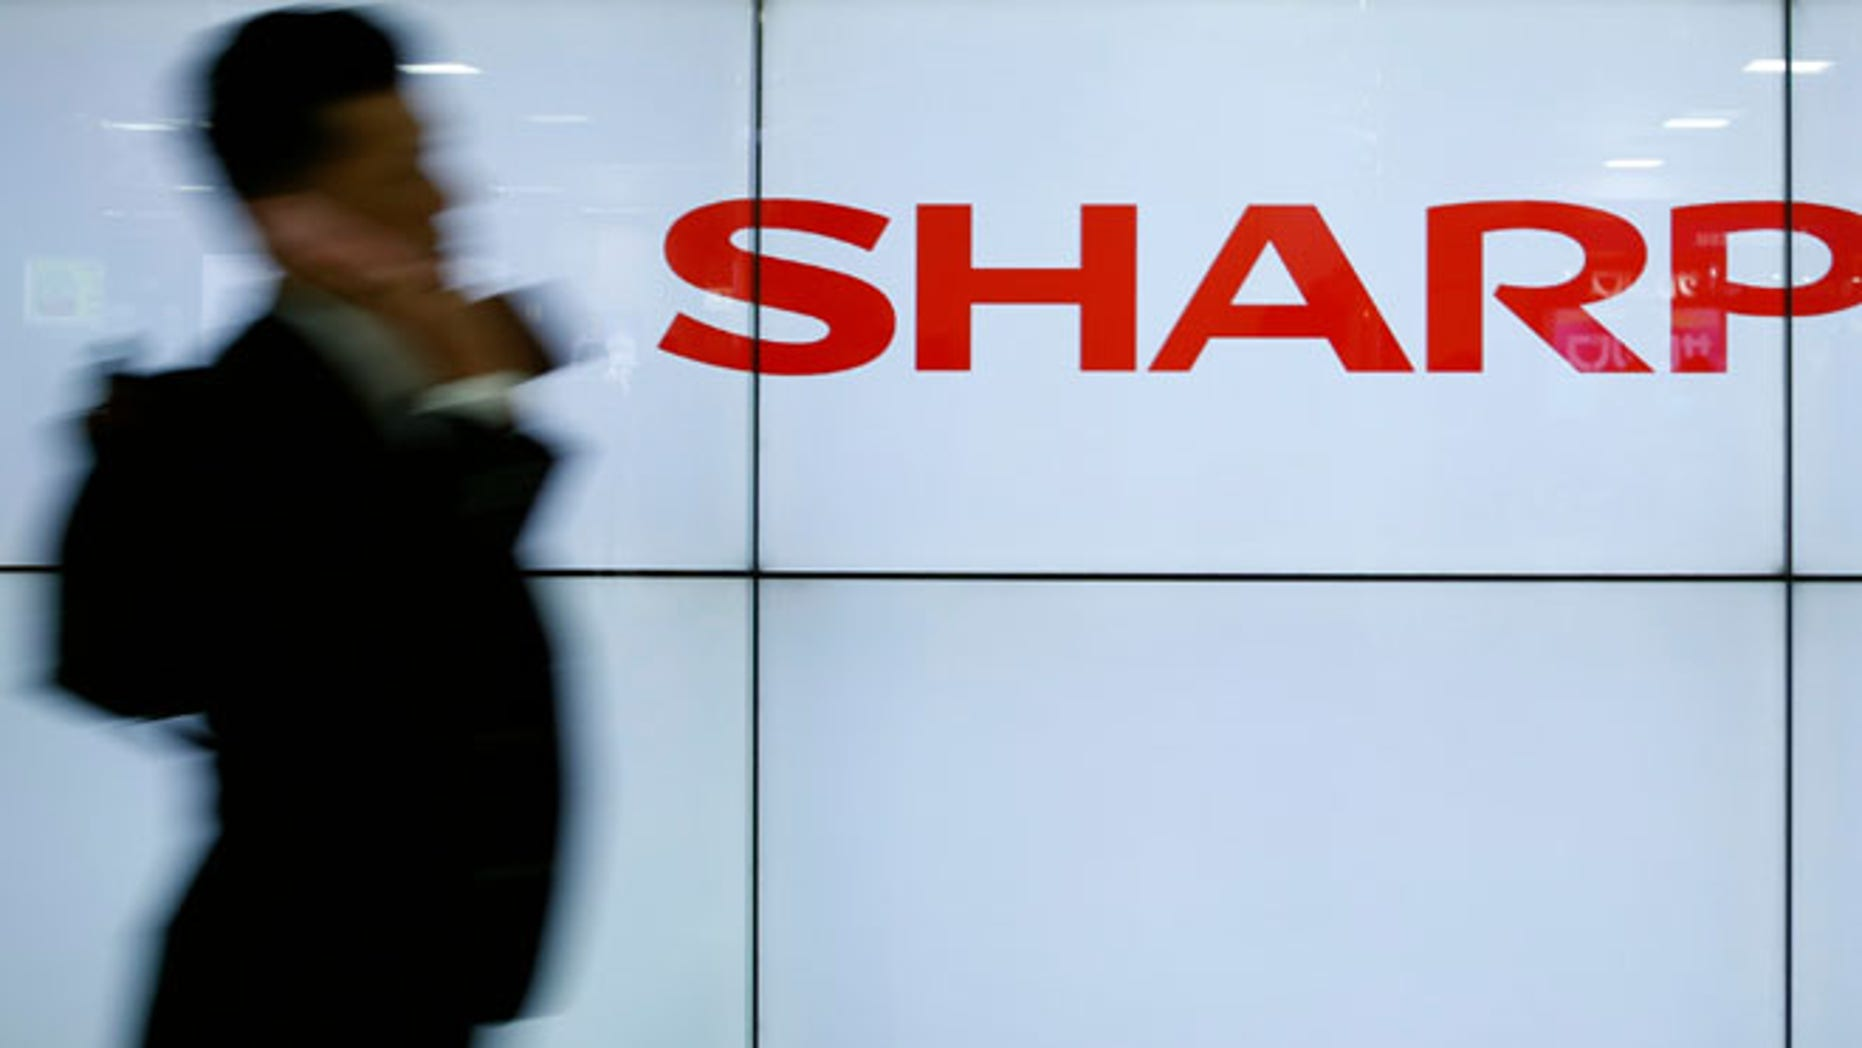 A Sharp spokesman told Reuters that no final decision has been made on the plant.